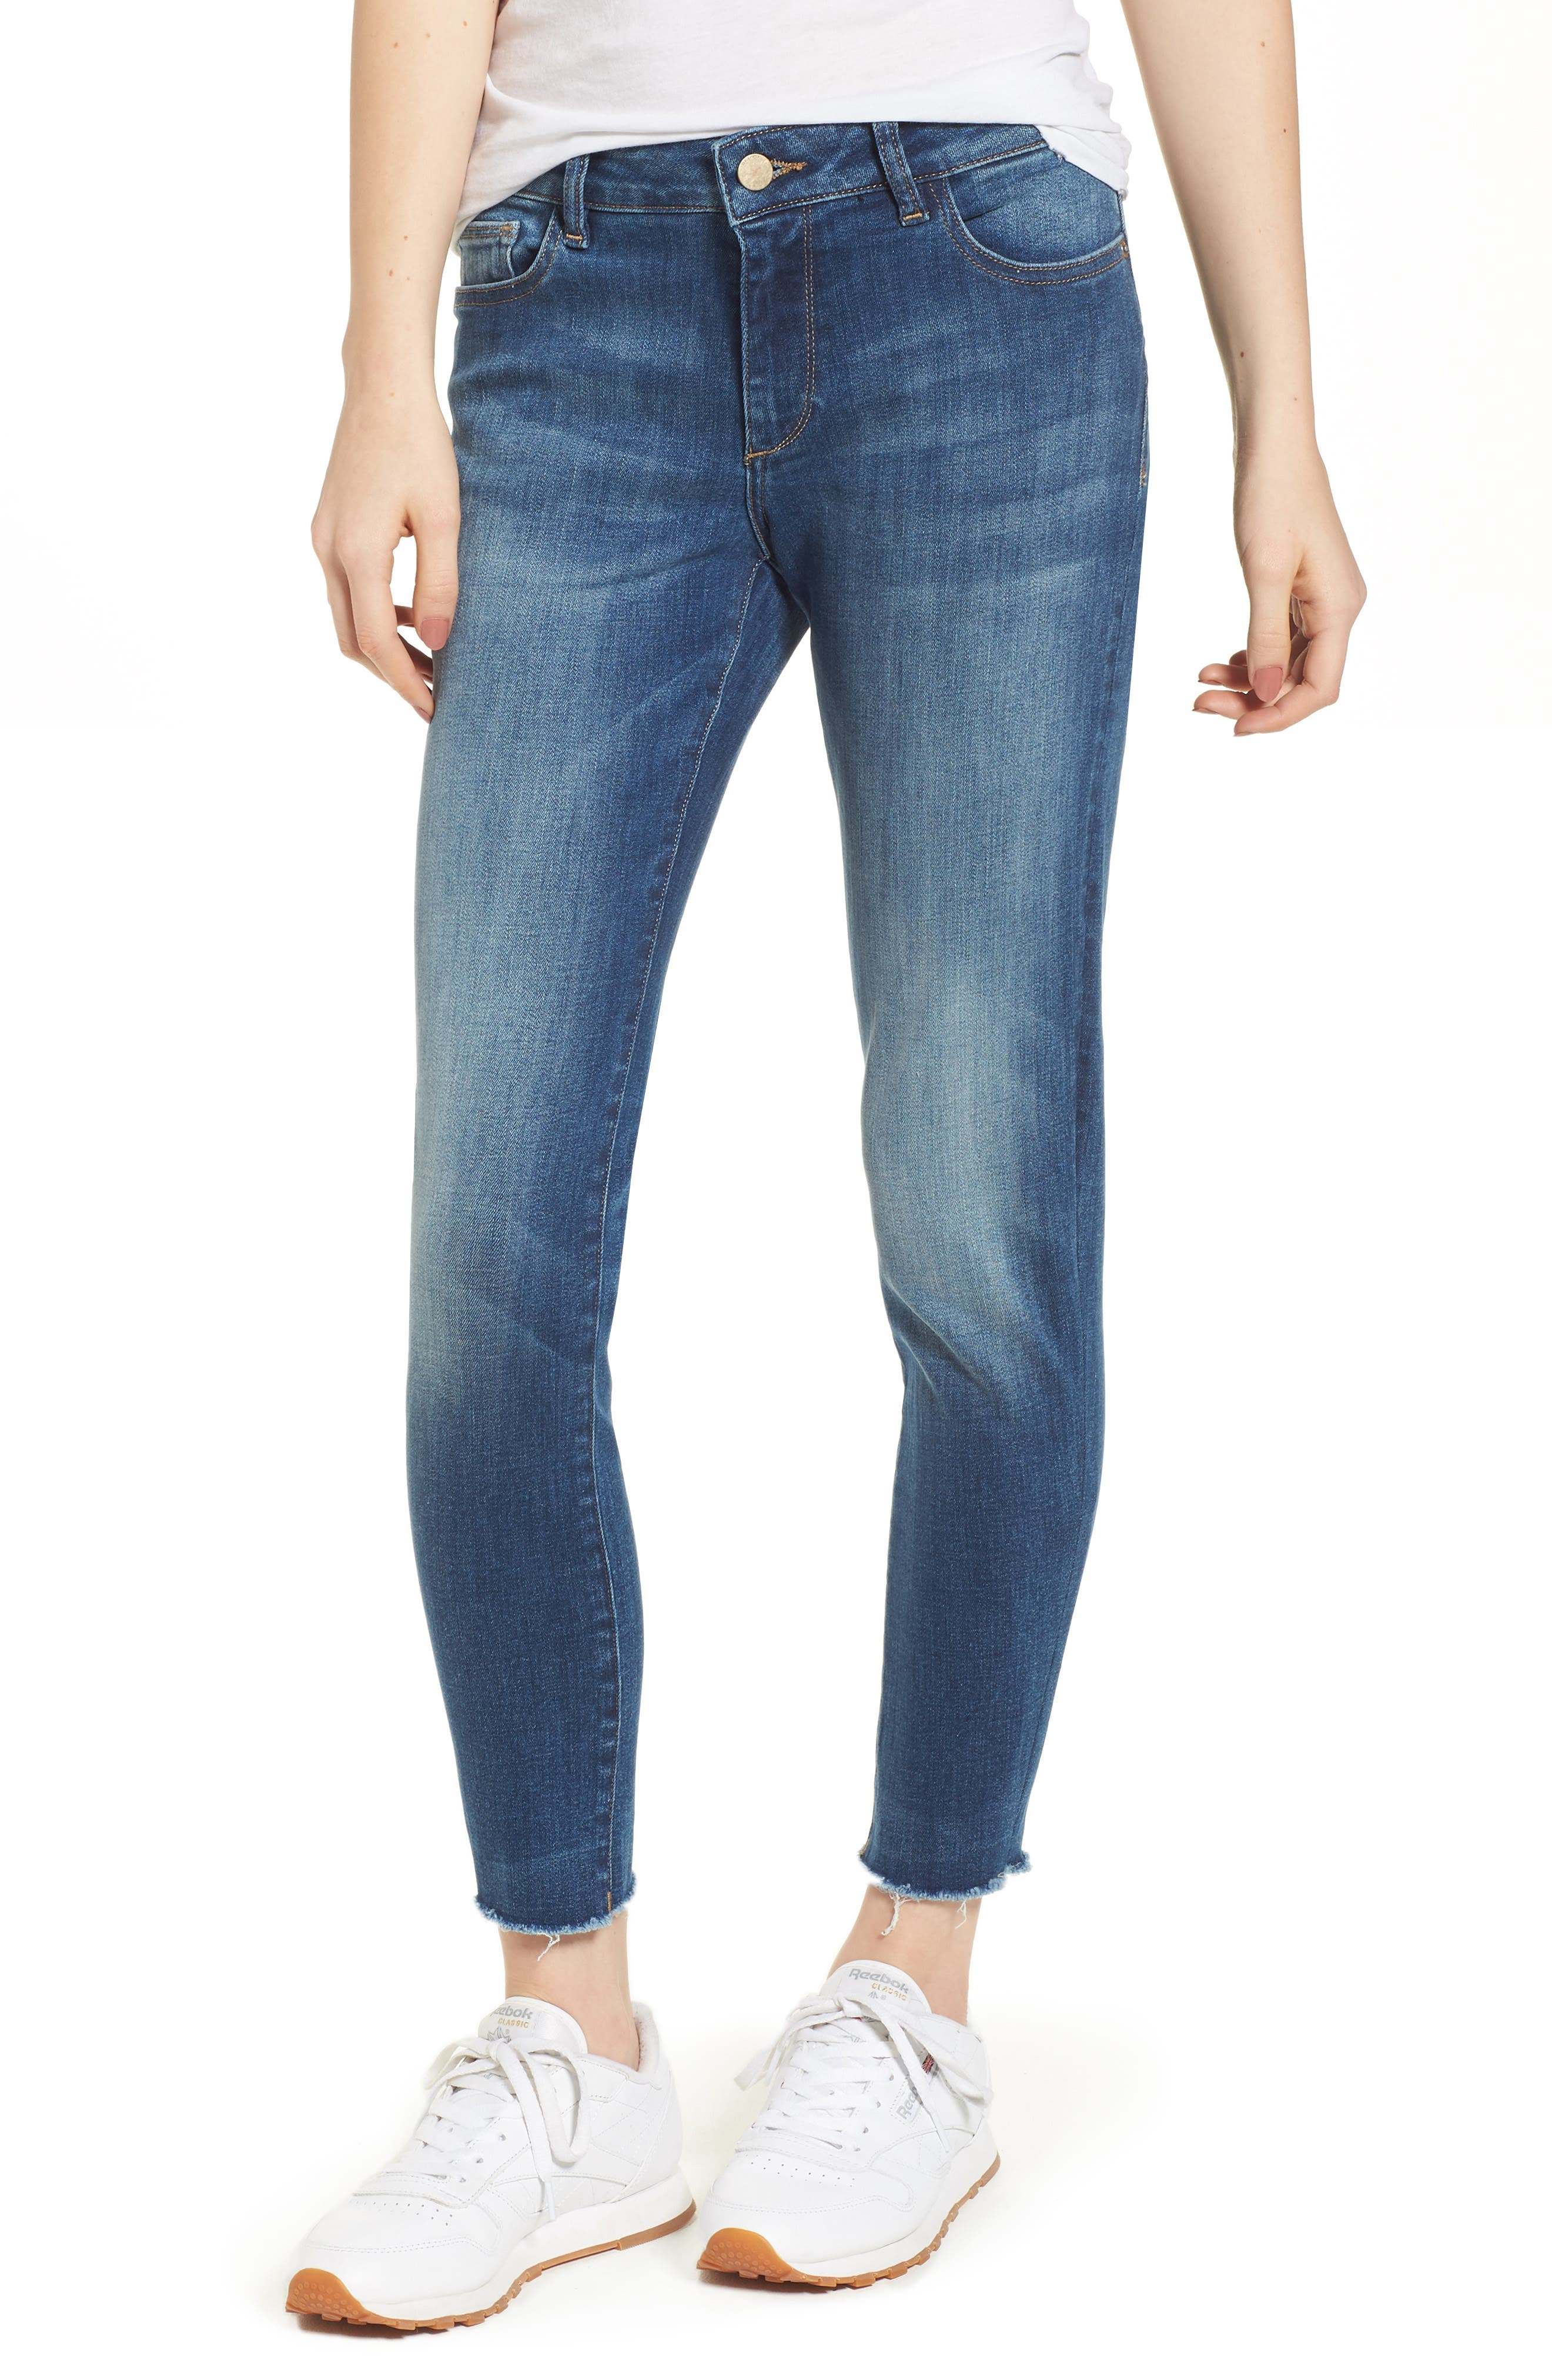 Coco Curvy Ankle Skinny Jeans,                             Main thumbnail 1, color,                             426